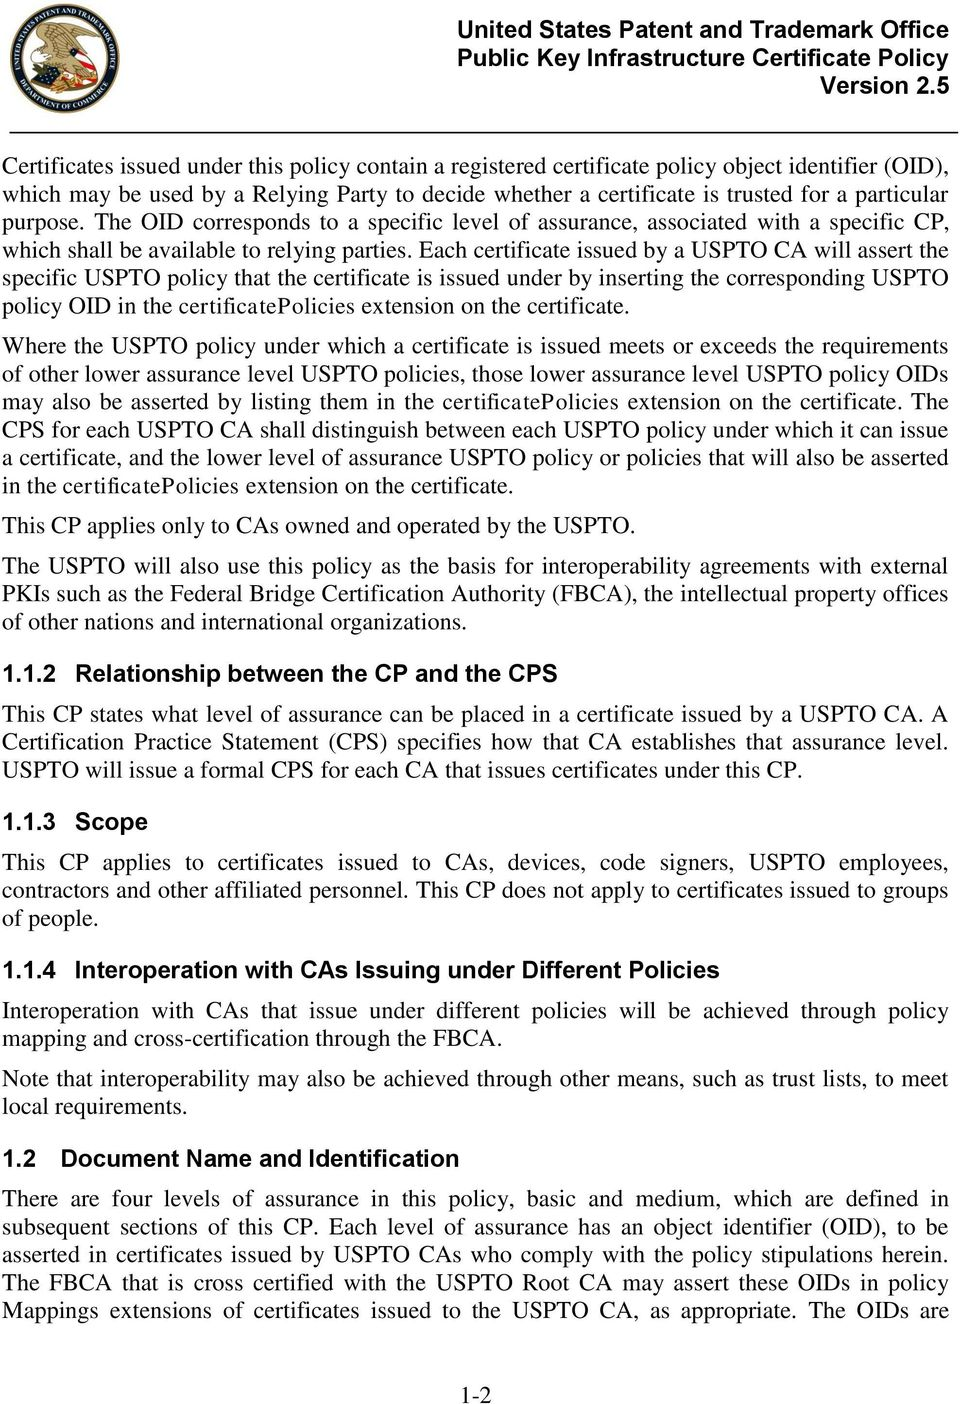 Each certificate issued by a USPTO CA will assert the specific USPTO policy that the certificate is issued under by inserting the corresponding USPTO policy OID in the certificatepolicies extension